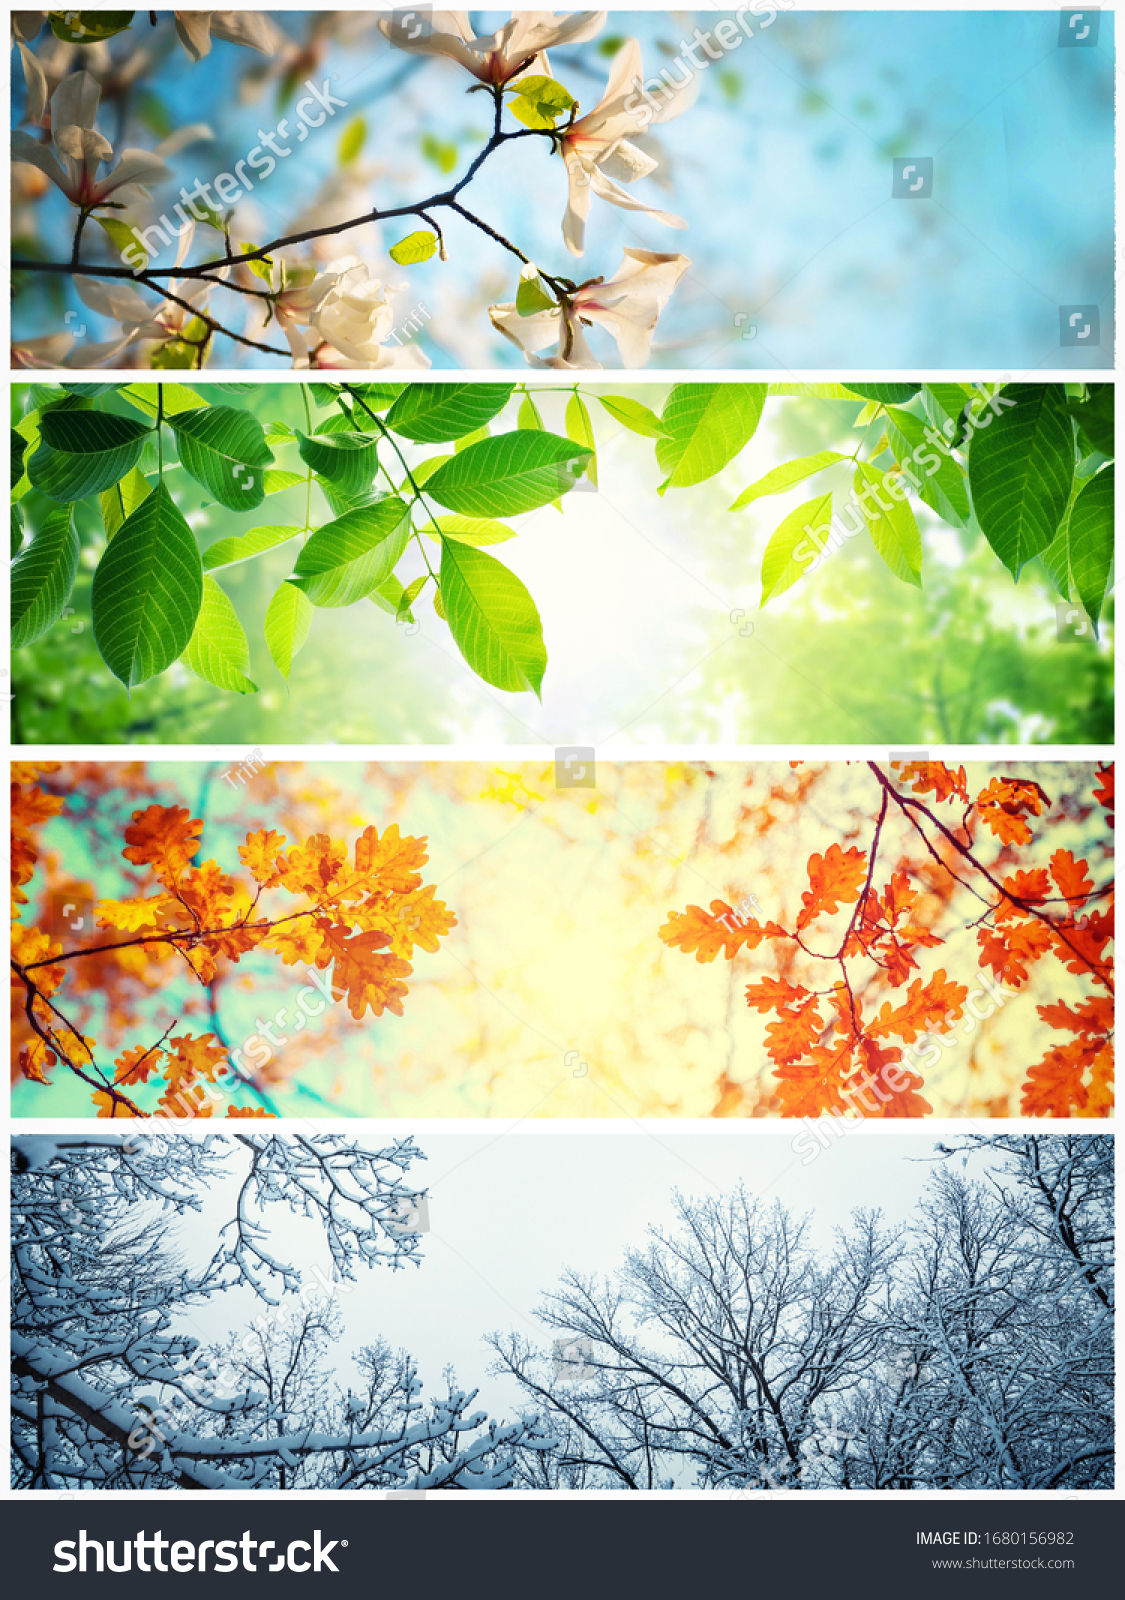 Four seasons. A pictures that shows four different pictures representing the four seasons: winter, spring, summer and autumn.  #1680156982